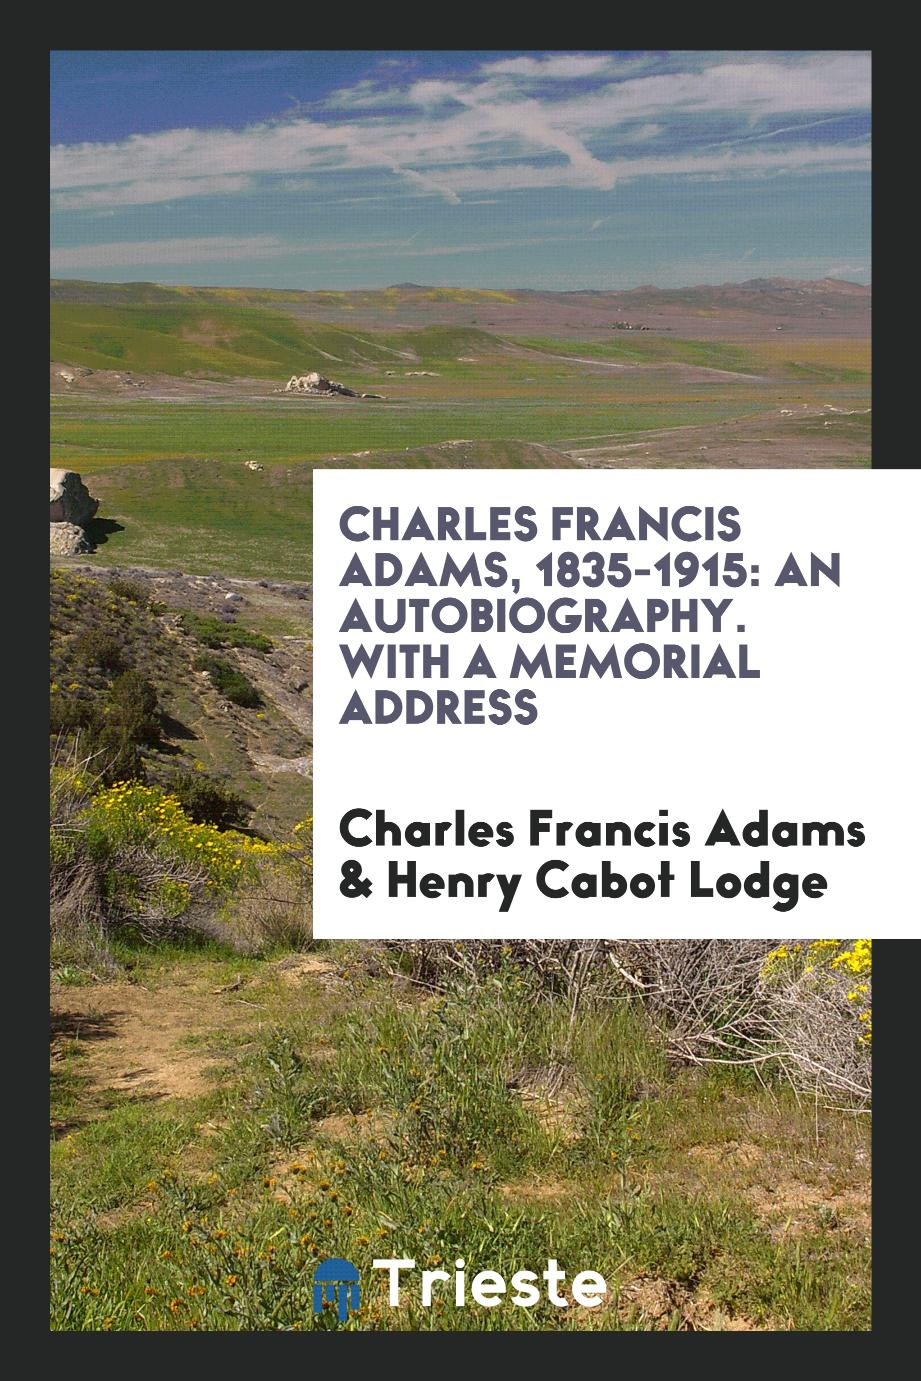 Charles Francis Adams, 1835-1915: An Autobiography. With a Memorial Address